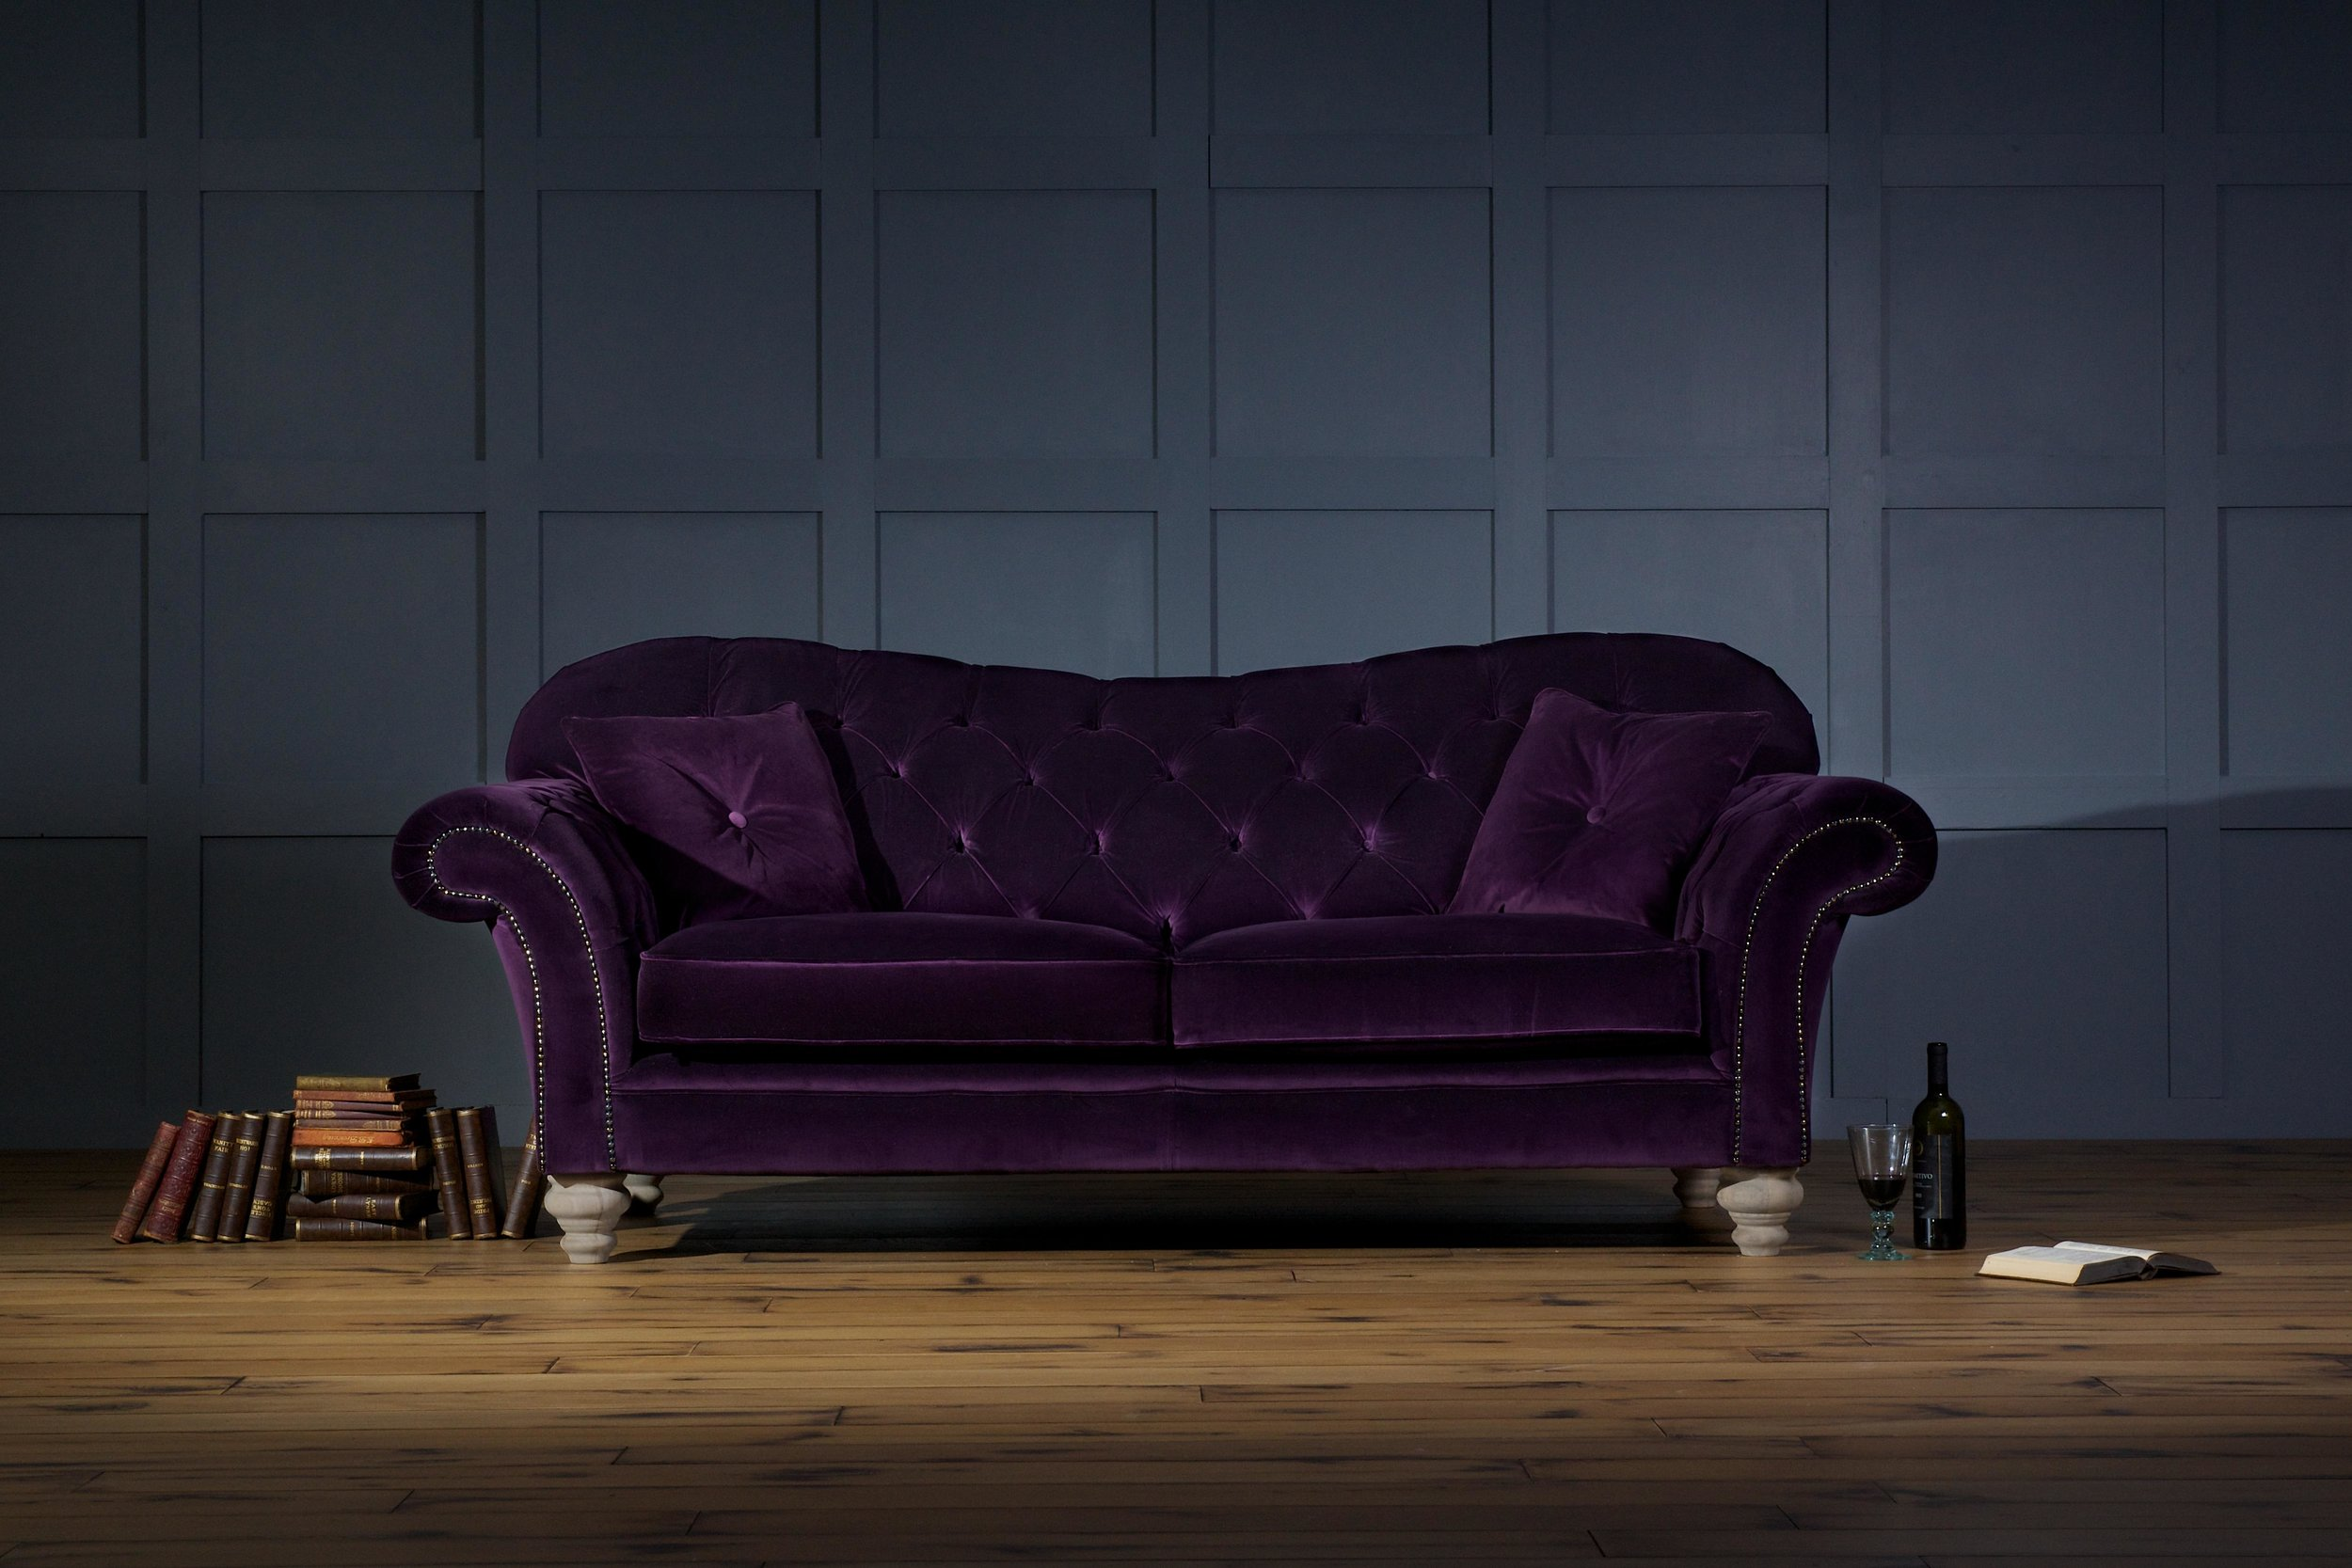 Upholstery for the sofa: which one to choose